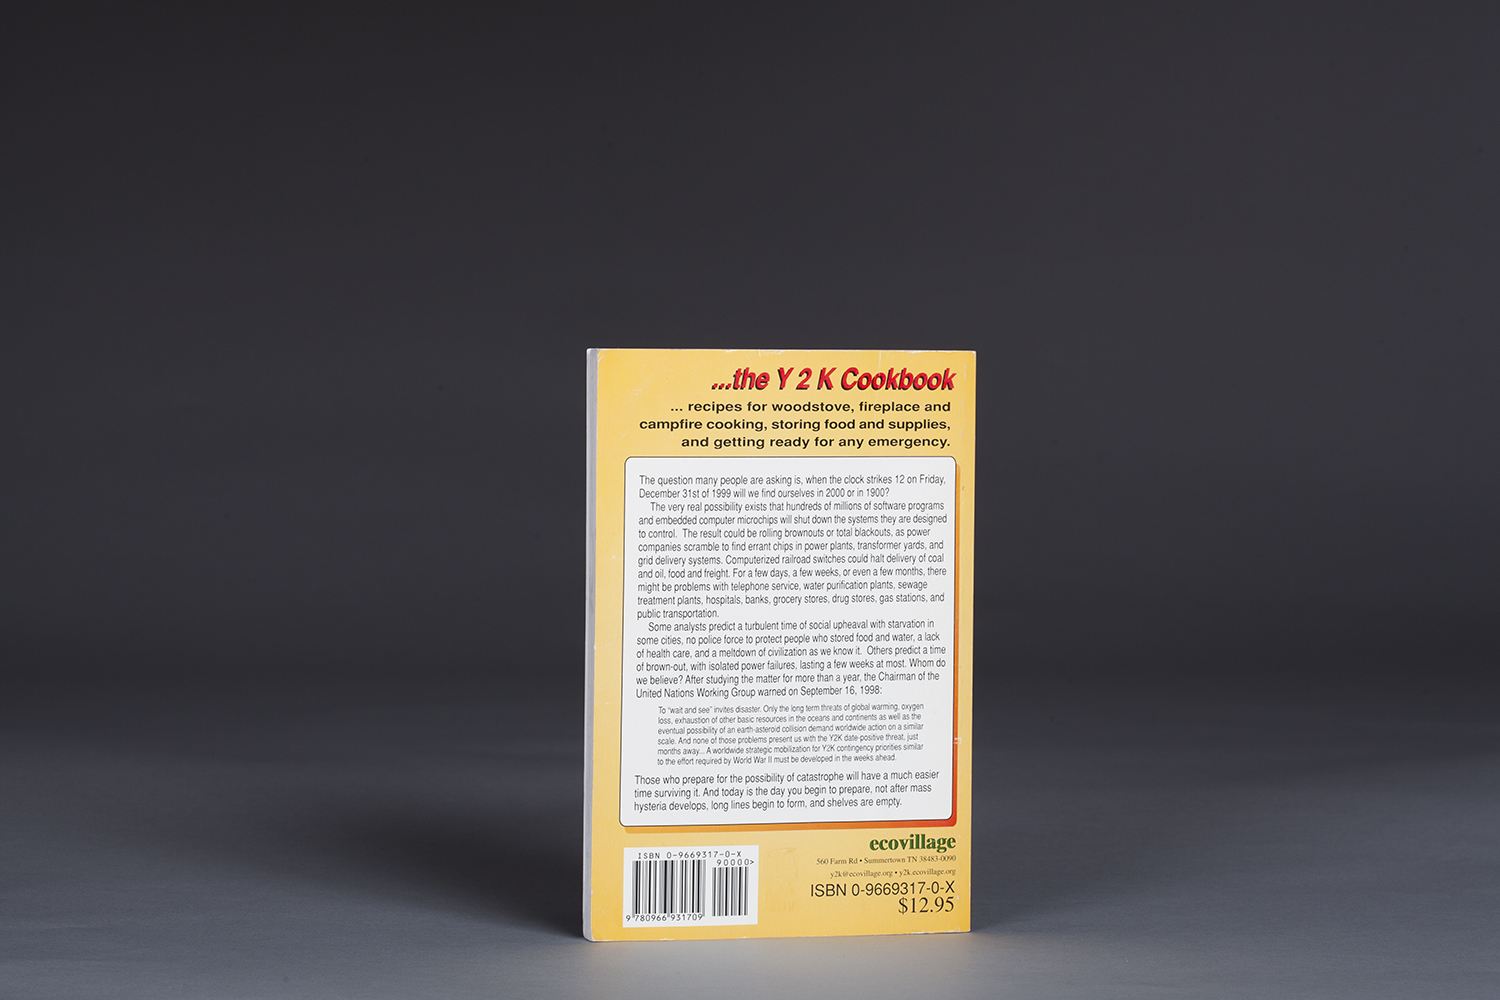 The Y2K Survival Guide and Cookbook - 9713 Back.jpg